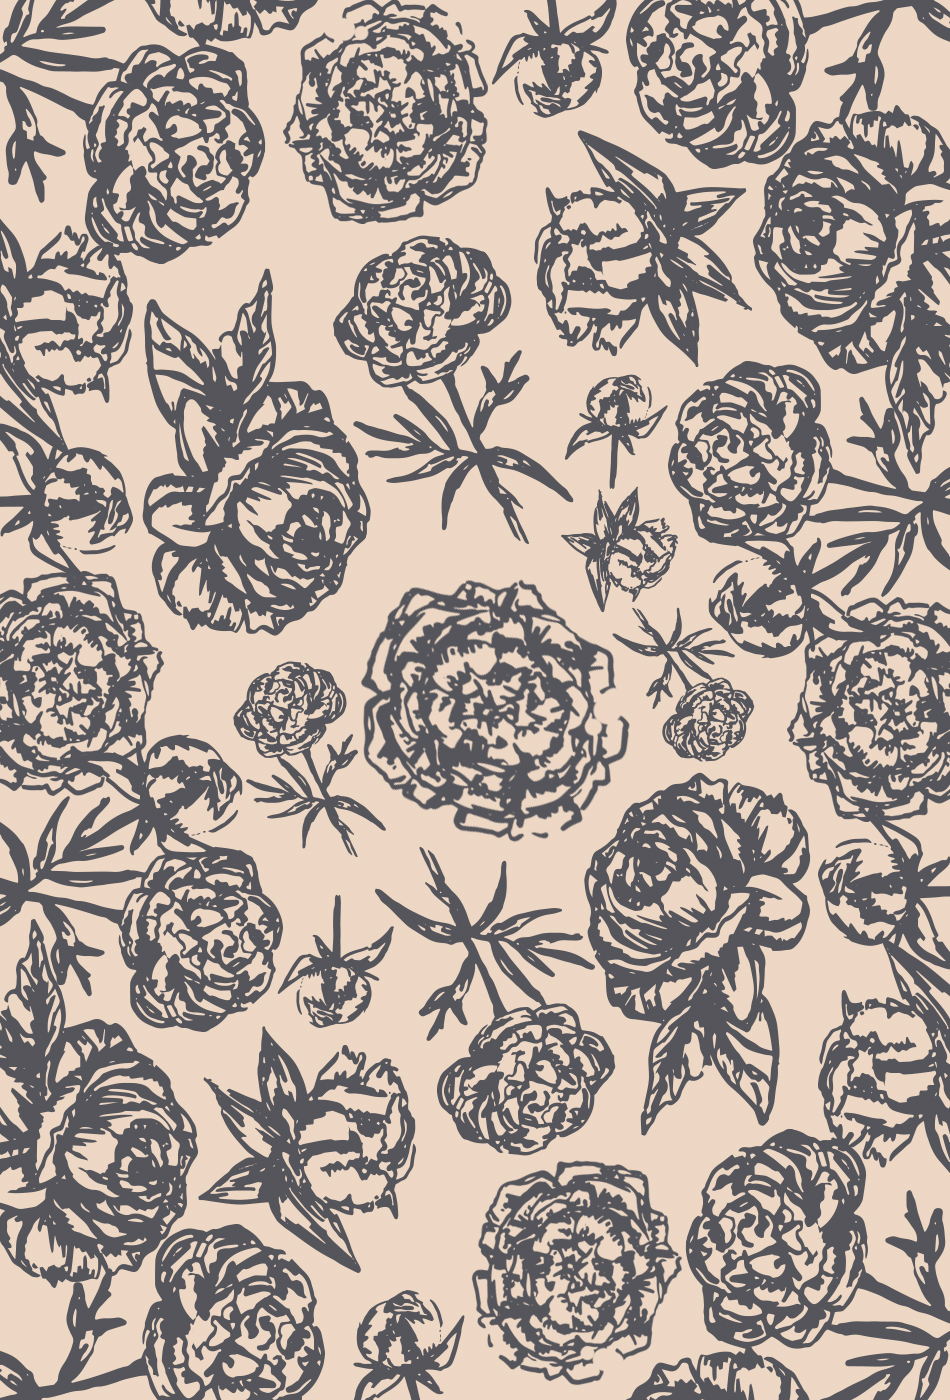 Peony Phone Wallpaper by Britt Fabello